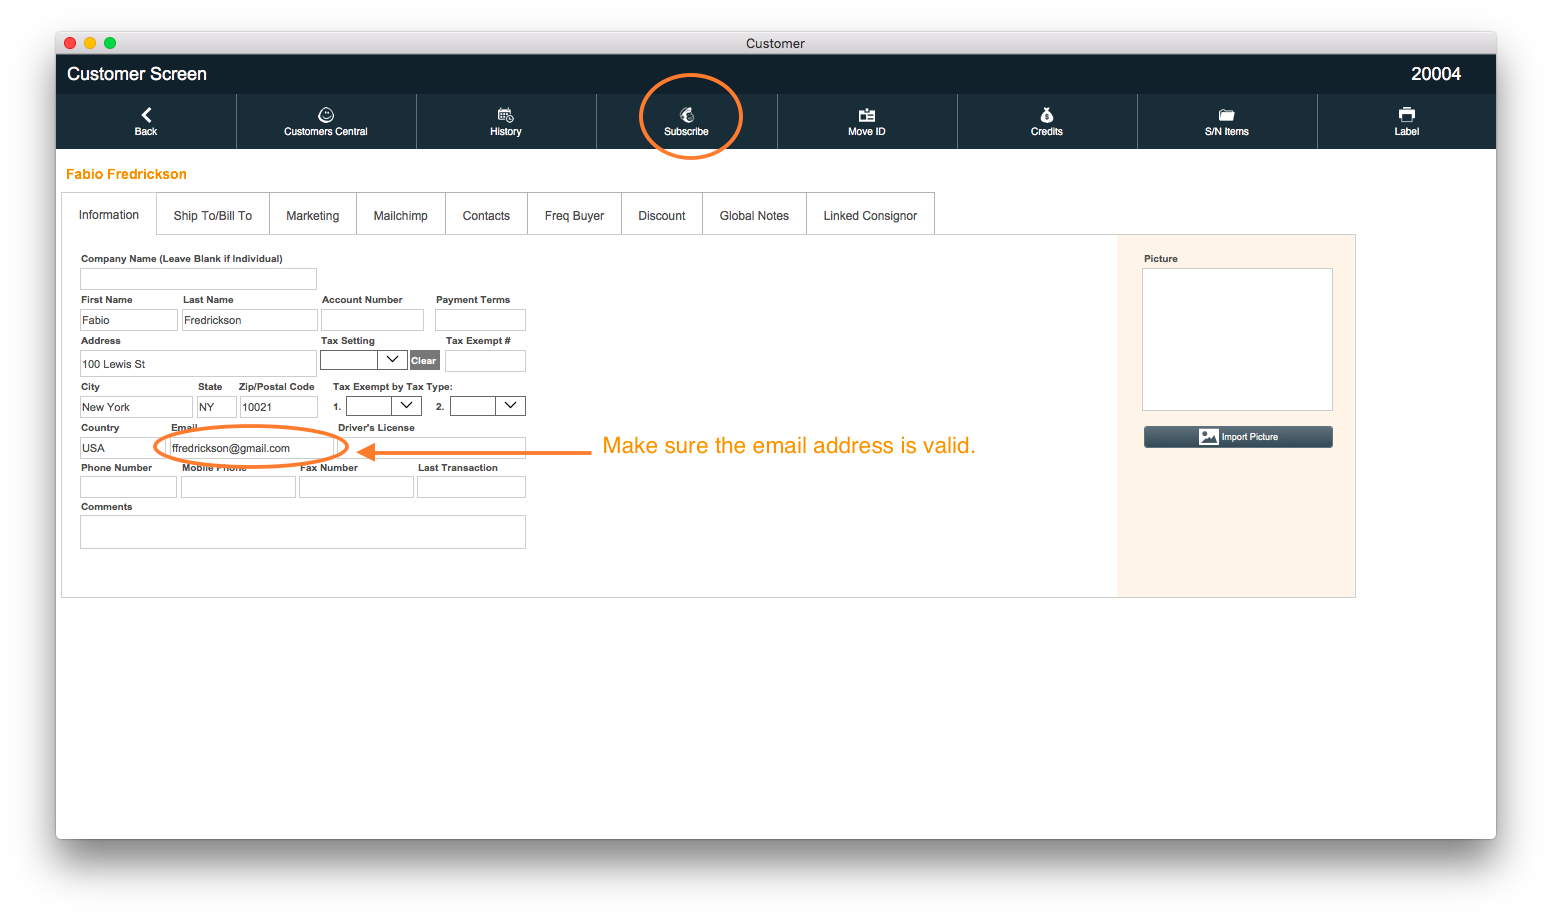 PayGo 6 POS Customer Screen MailChimp Email Entry